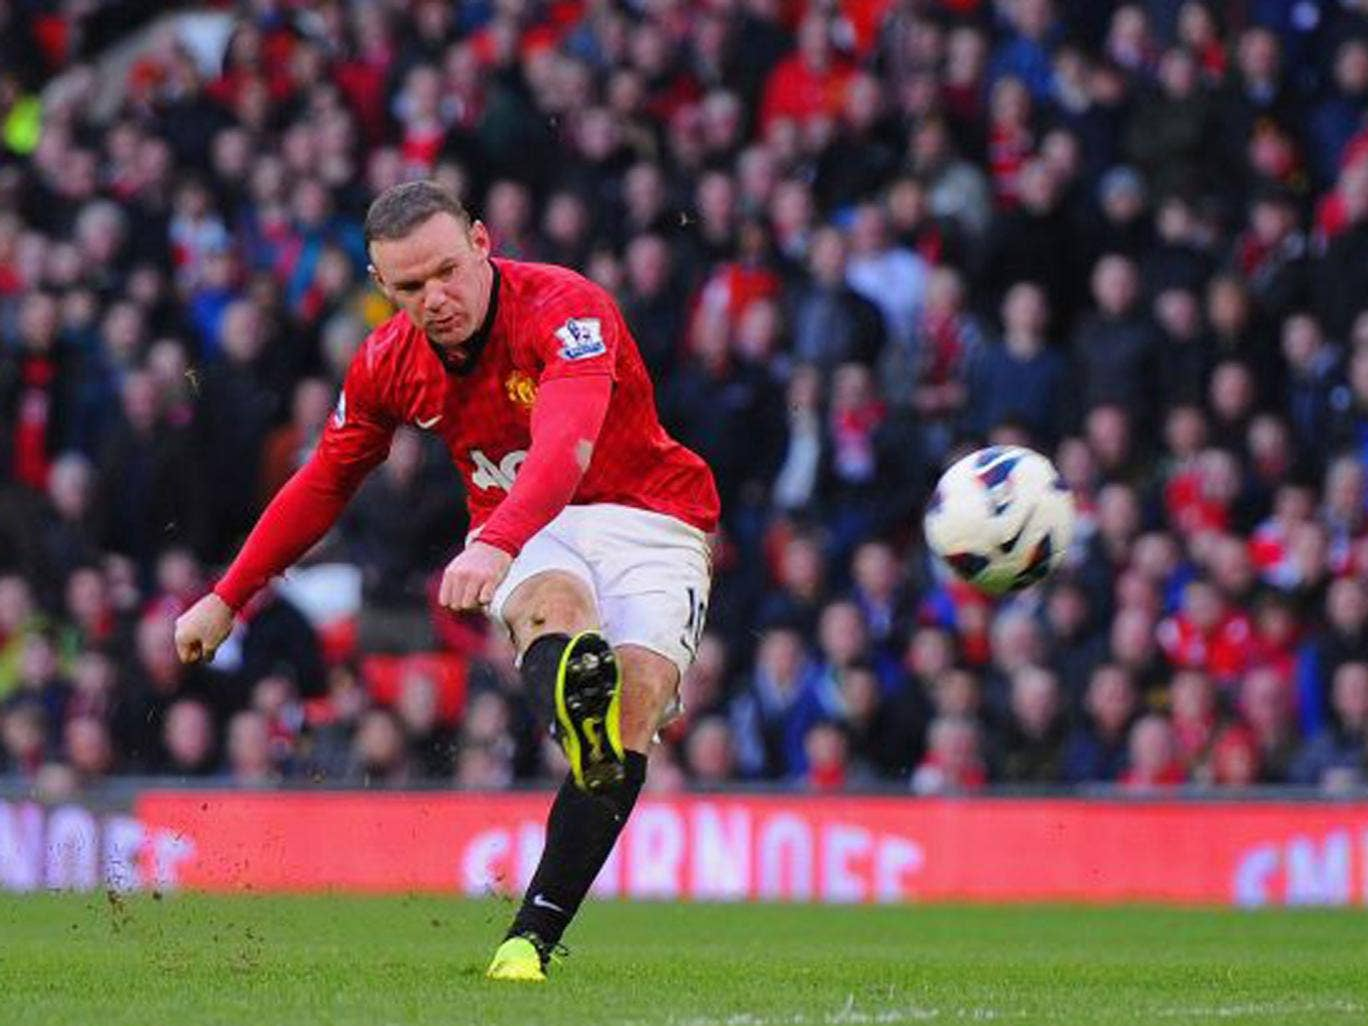 Wayne Rooney shoots to score United's fourth goal against Norwich